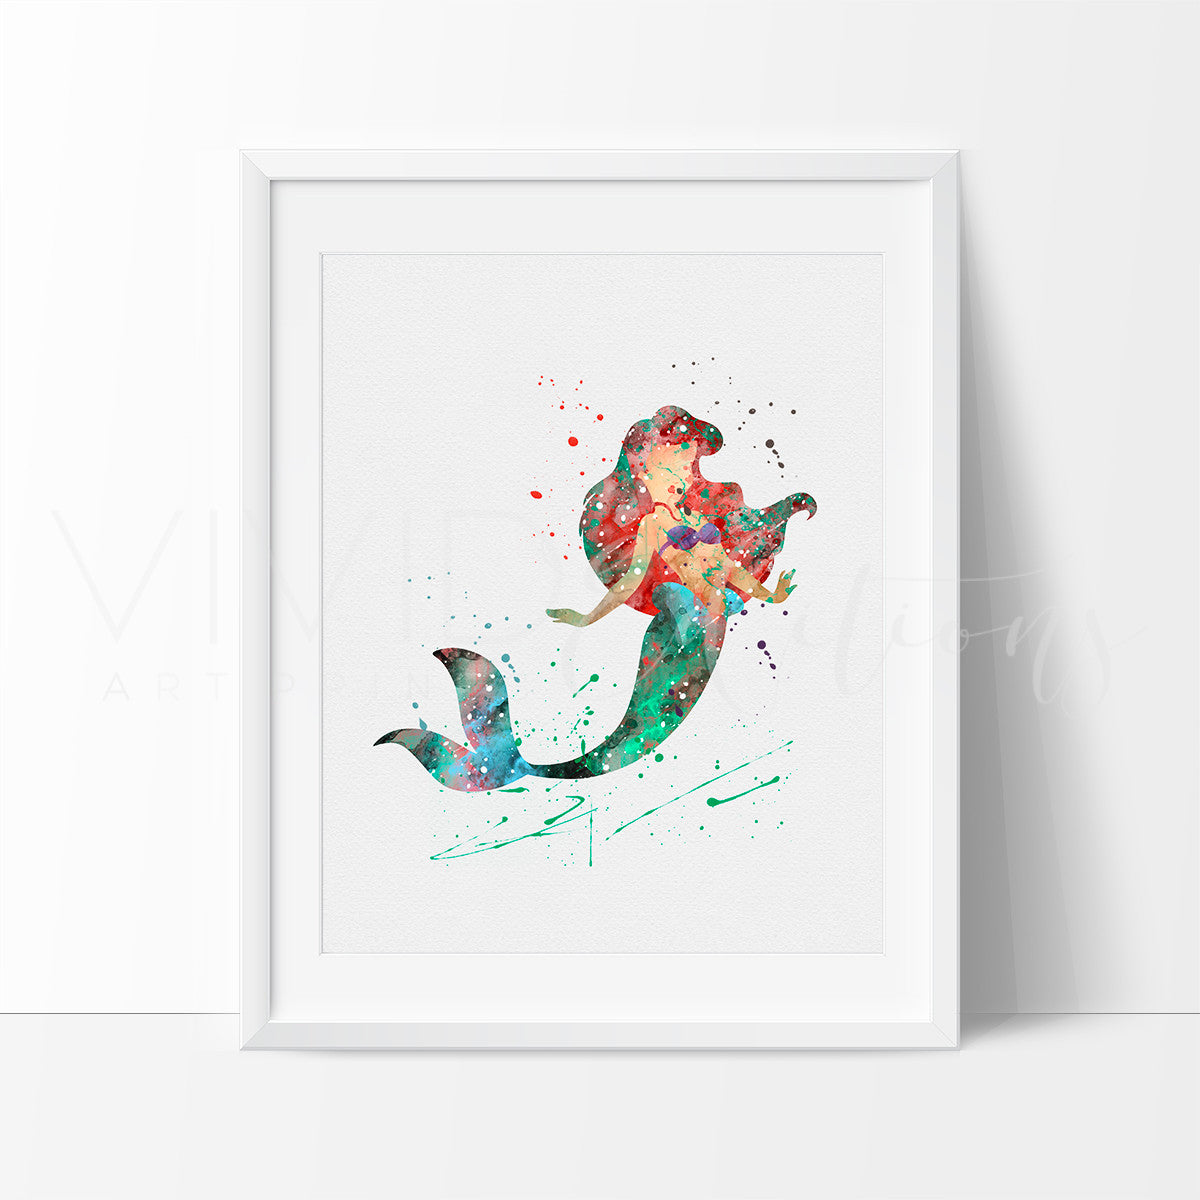 Nursery Decor The Little Mermaid Ariel Nursery Wall Art Nursery Prints Nursery Art Nursery Decor Girl Vivideditions